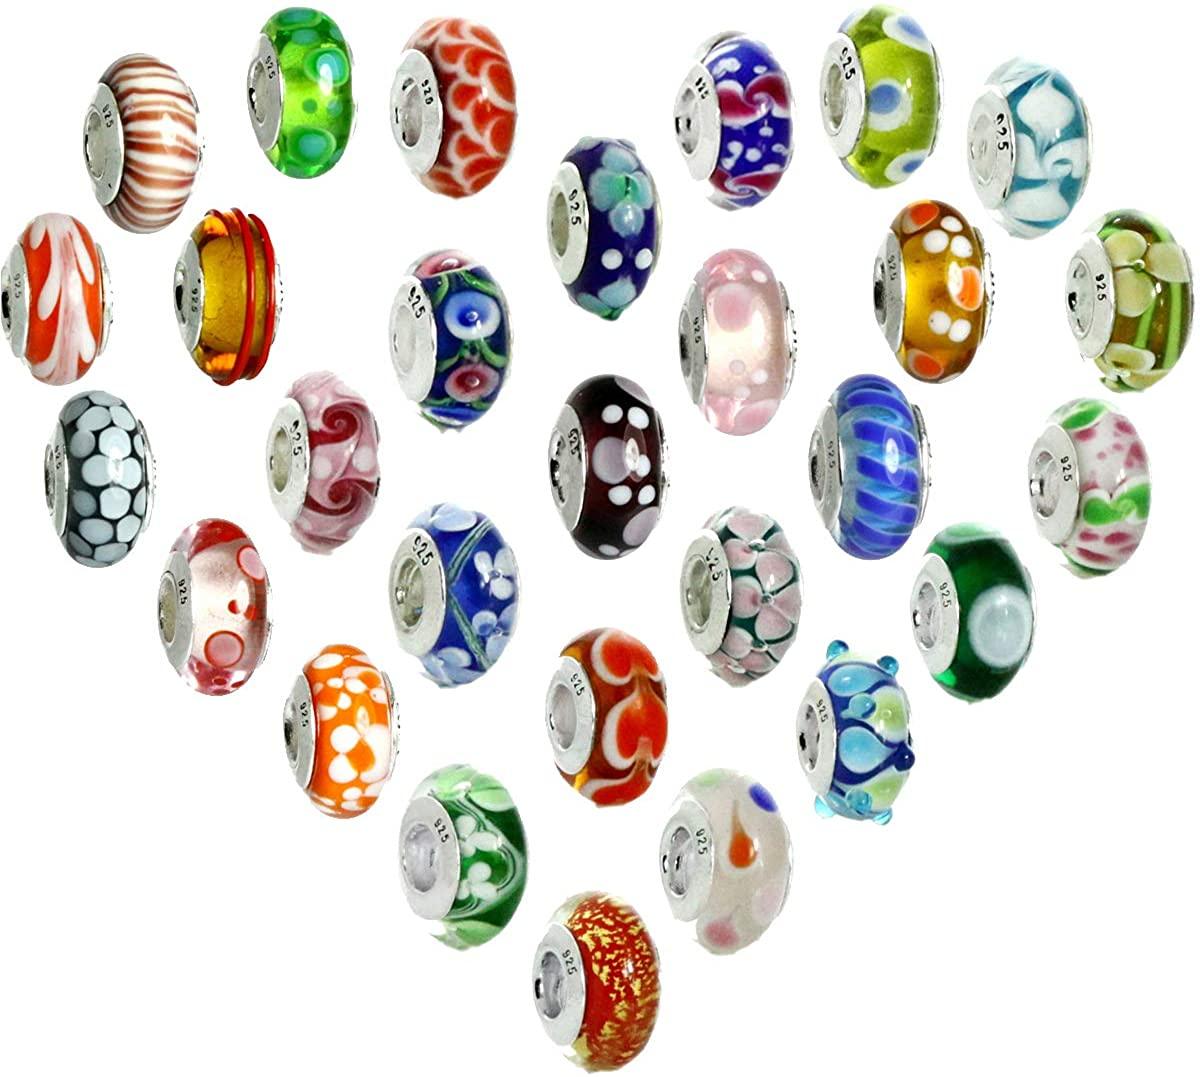 6PCS Murano Glass Charms Beads, Random Sent Assortment of Same or Mixed Patterns, for Bracelets, 925 Silver Sterling